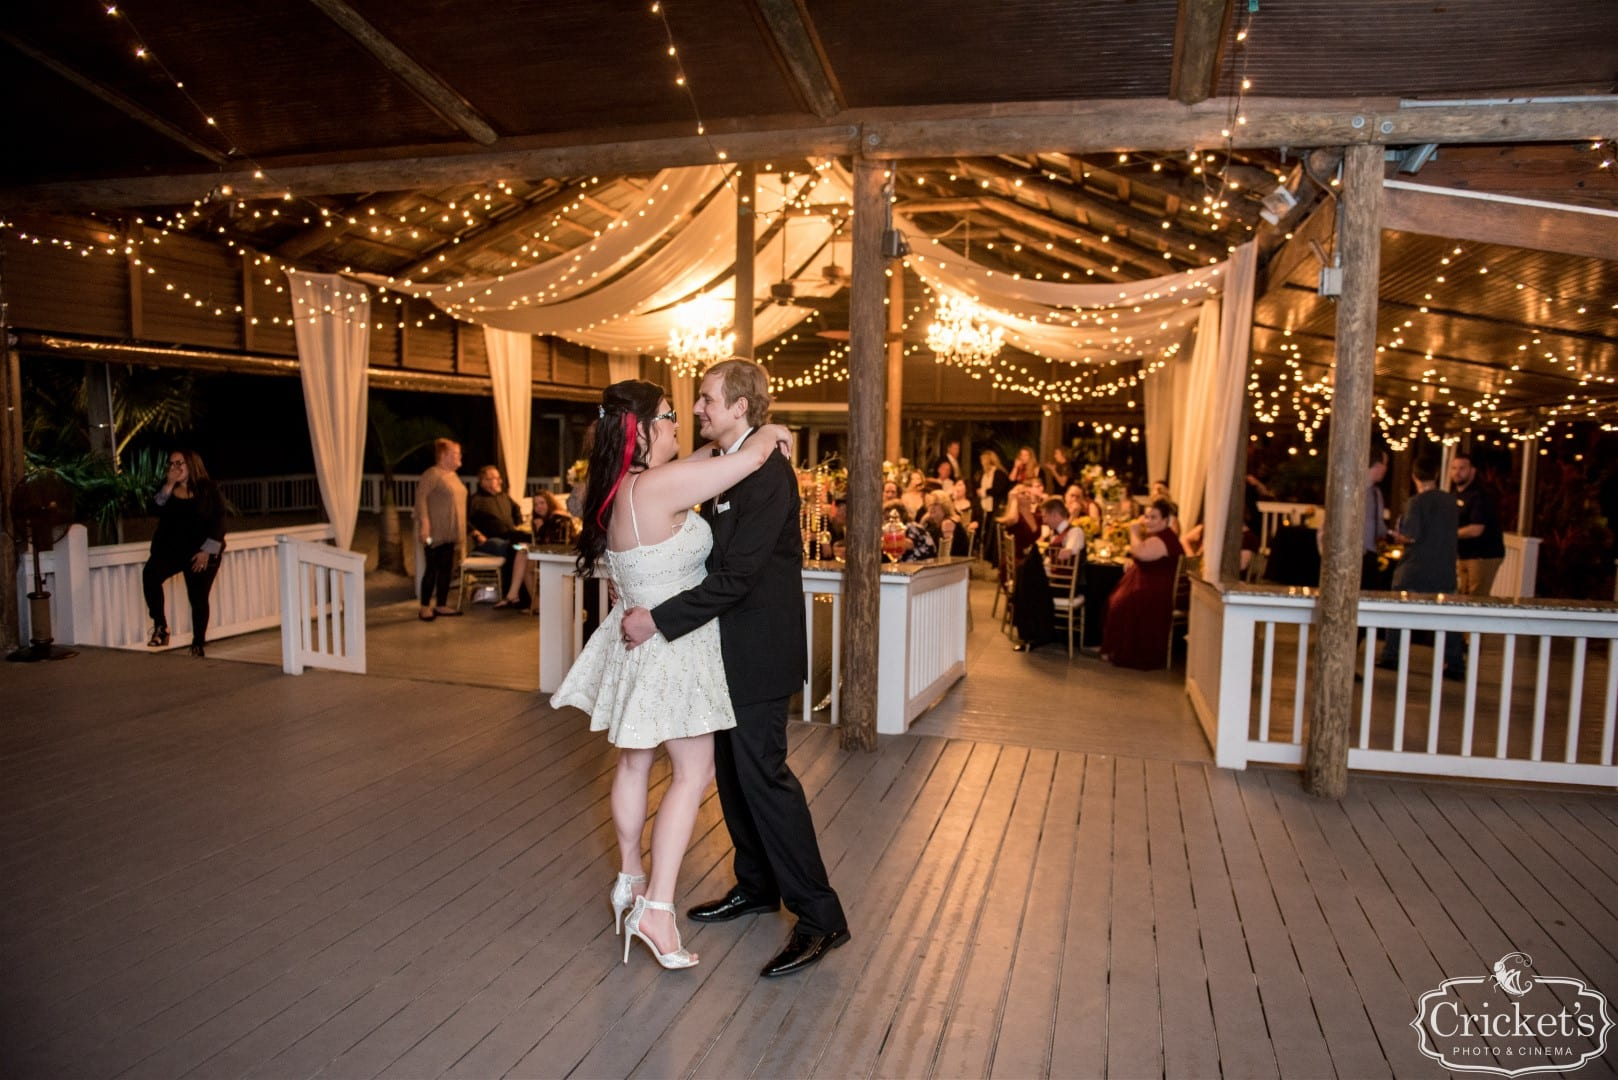 Jesea and James' first dance